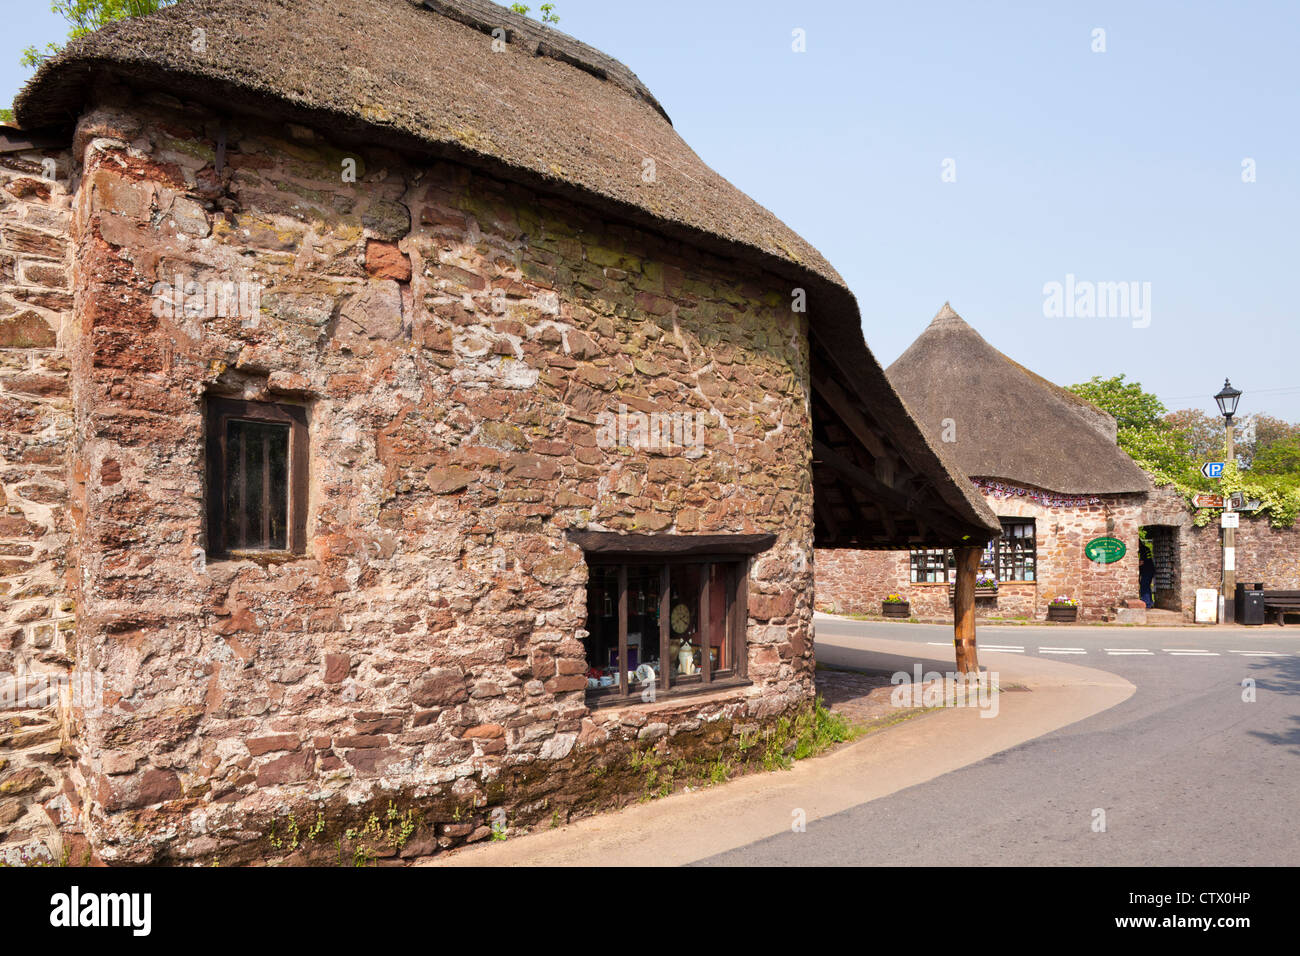 The famous thatched Cockington Forge dating from the 14th century in the village of Cockington, Devon - Stock Image